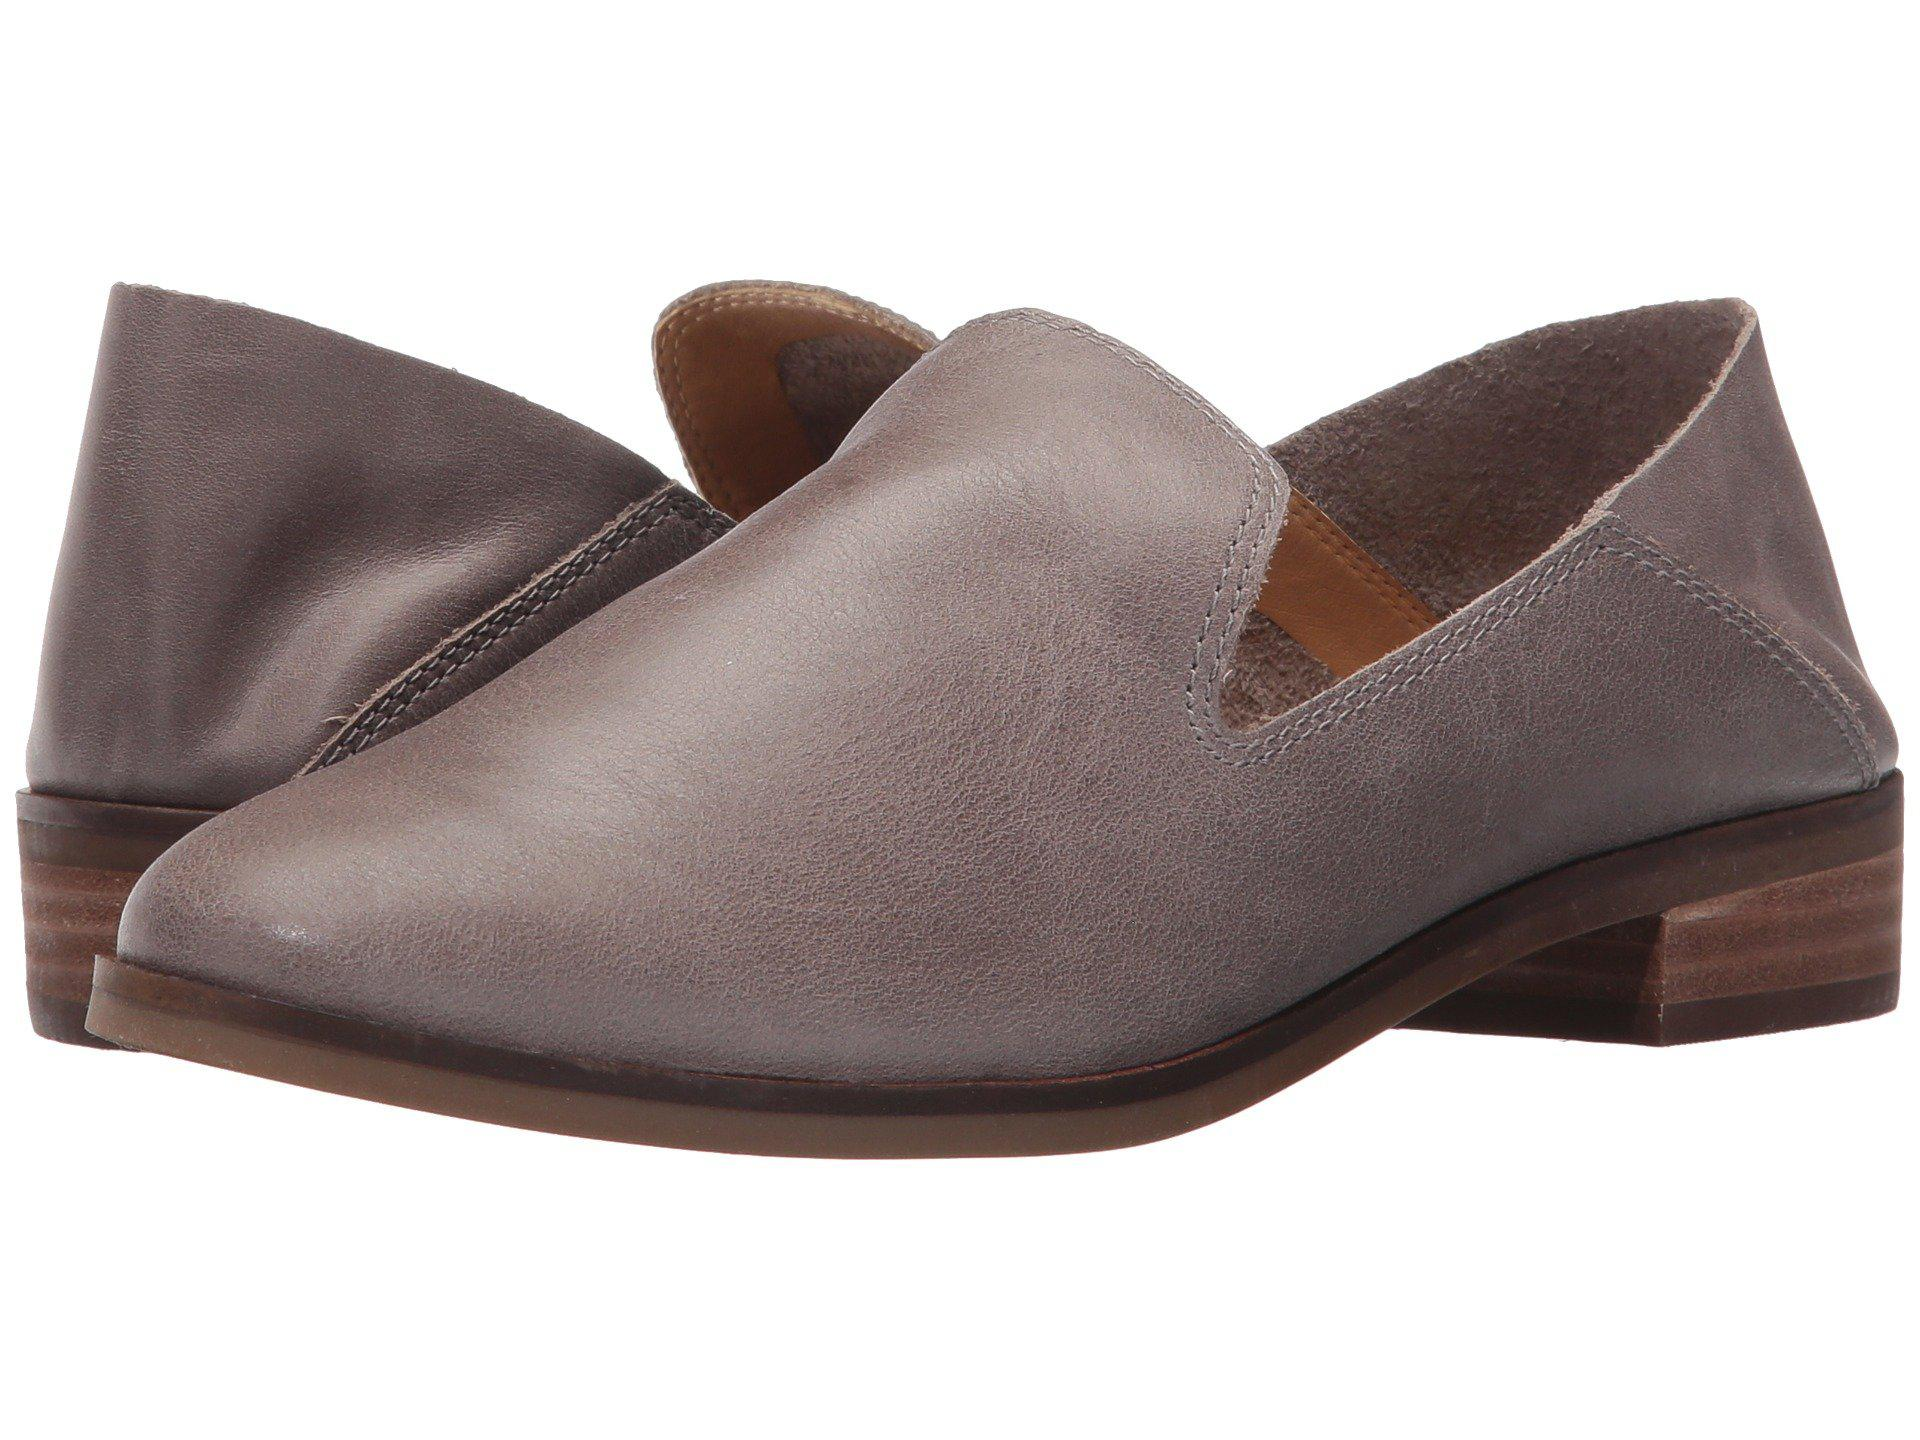 220ccfb3393 Lyst - Lucky Brand Cahill Loafer Flat in Brown - Save ...